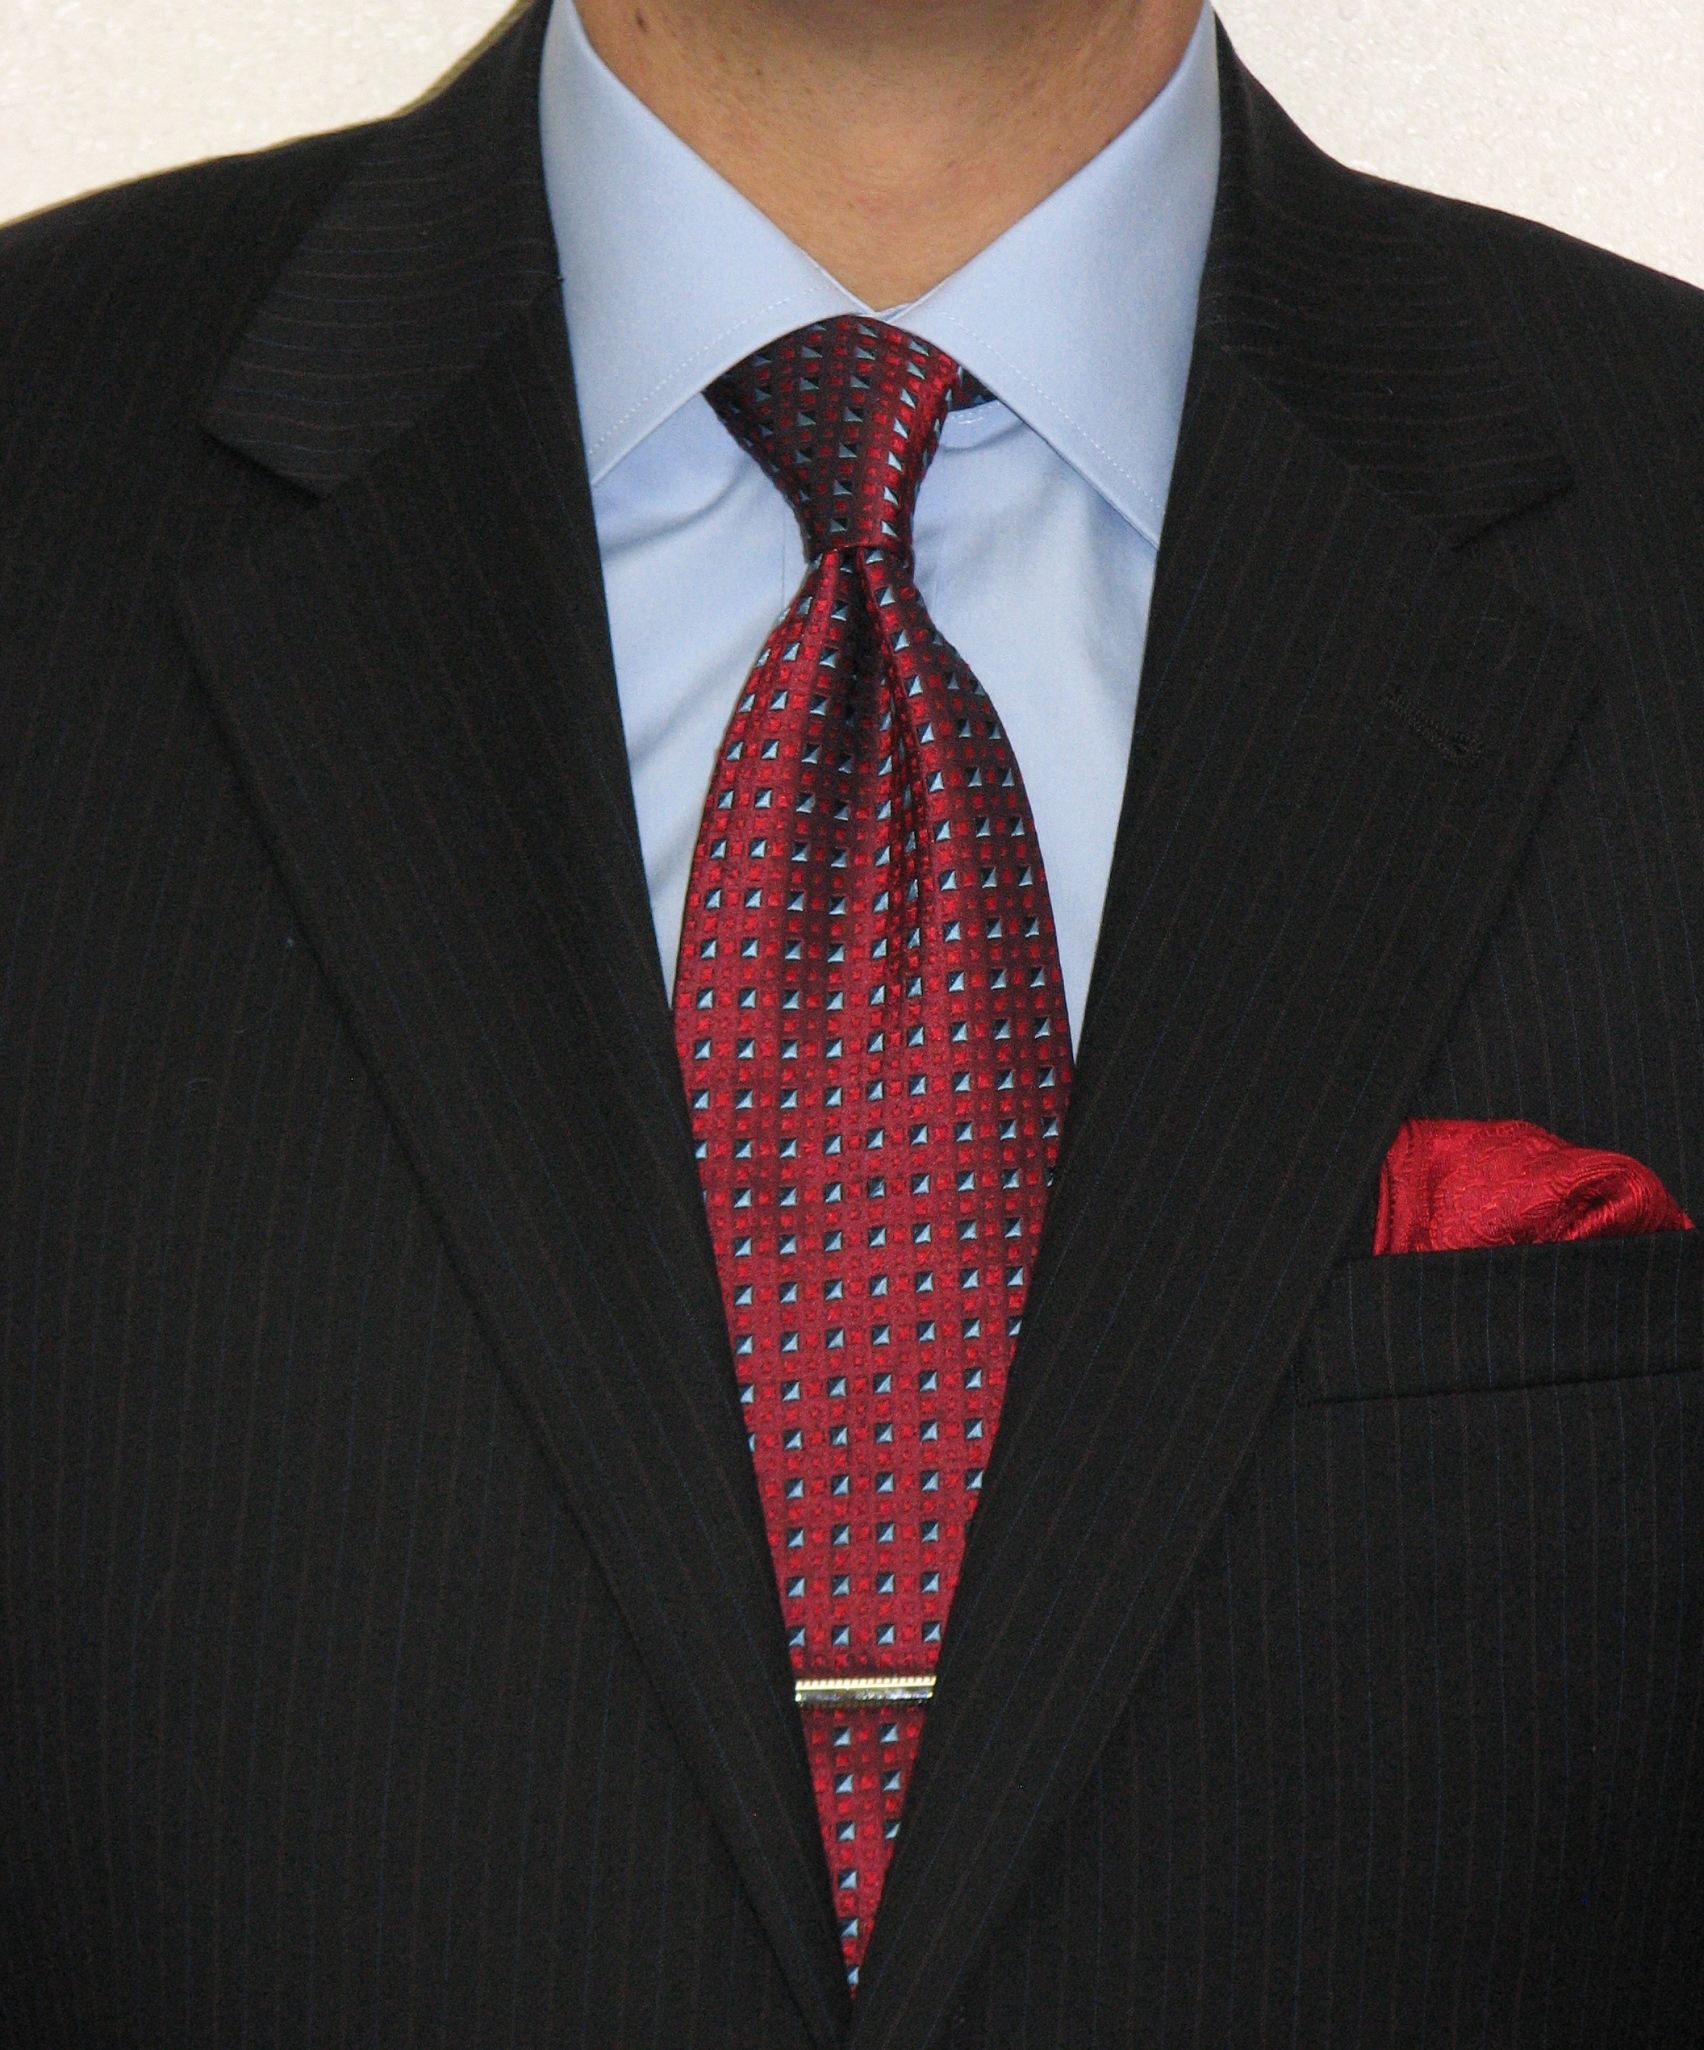 The Only 2 Tie Knots You Need to Tie